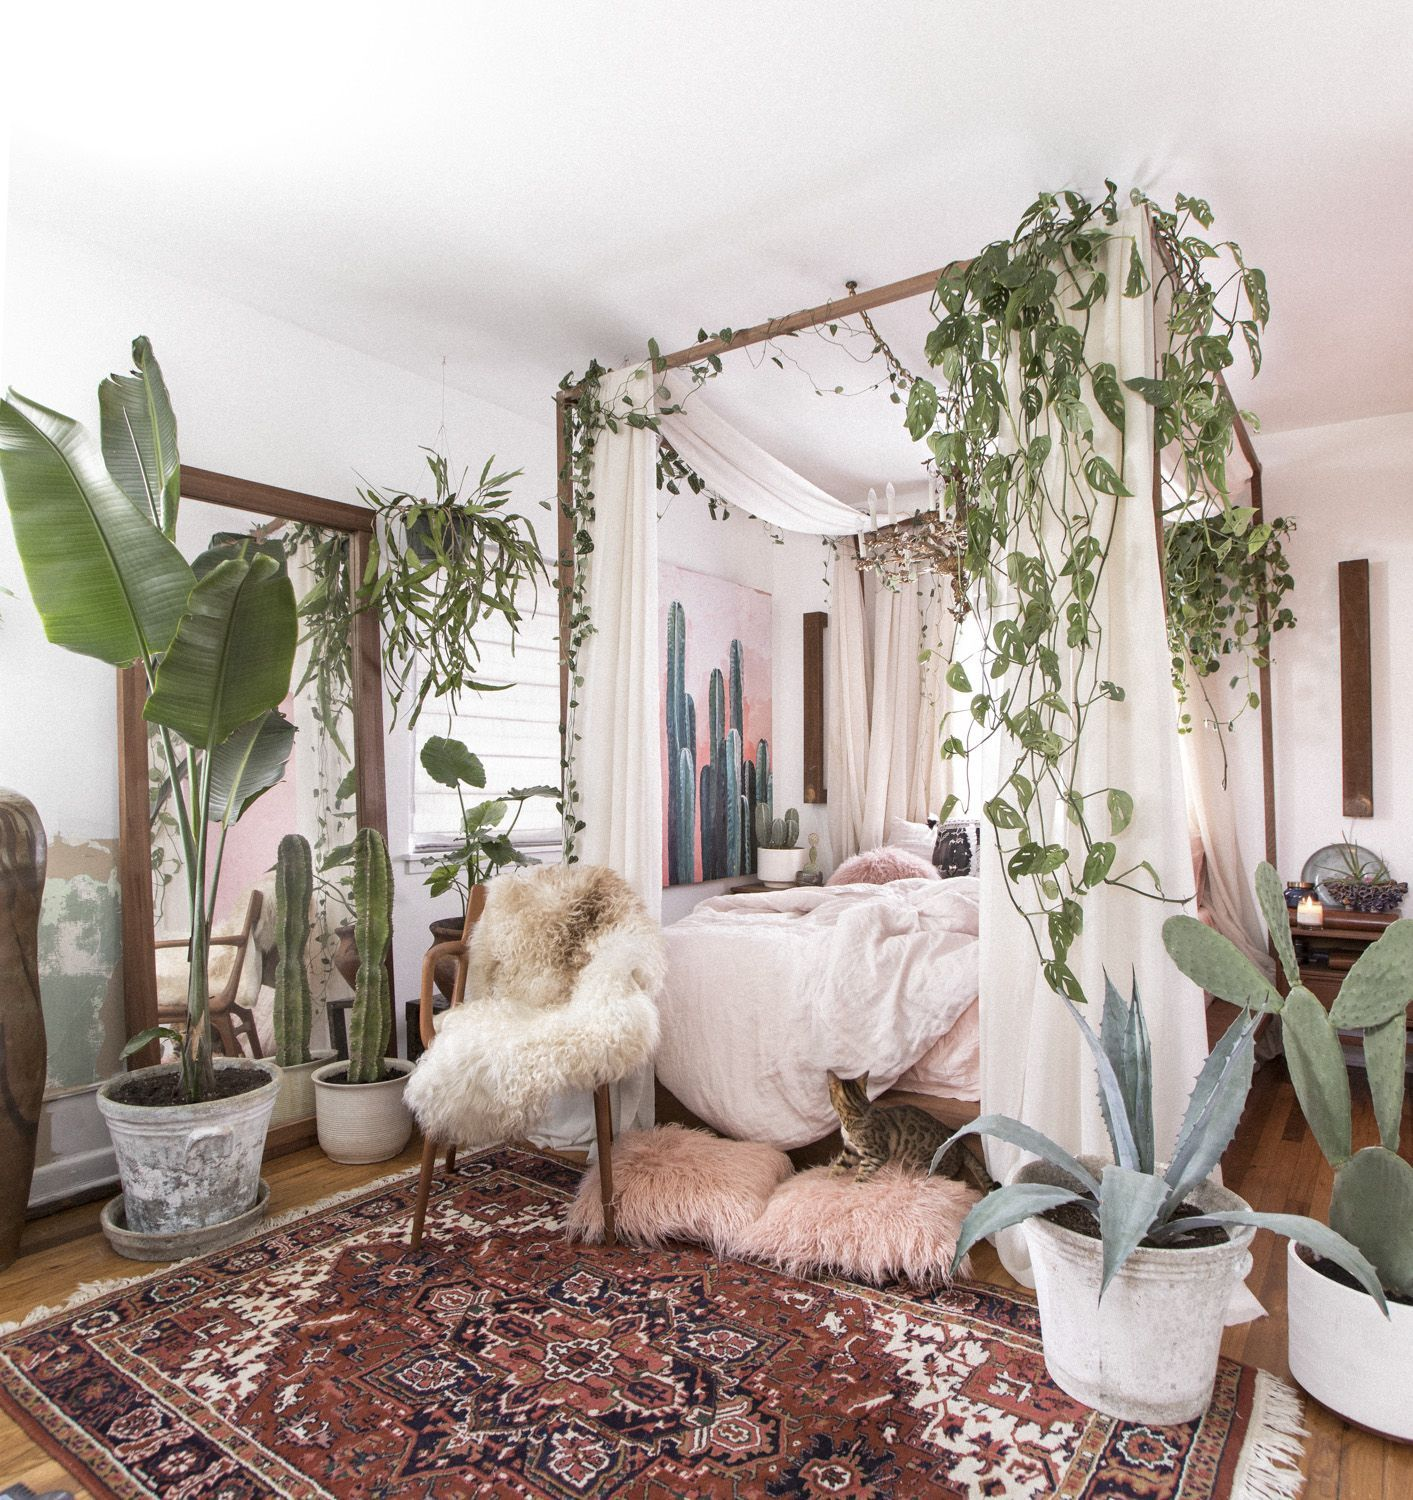 Small Space Decor Tips From This Gorgeous Boho Apartment Space Decor Bohemian Apartment Interior